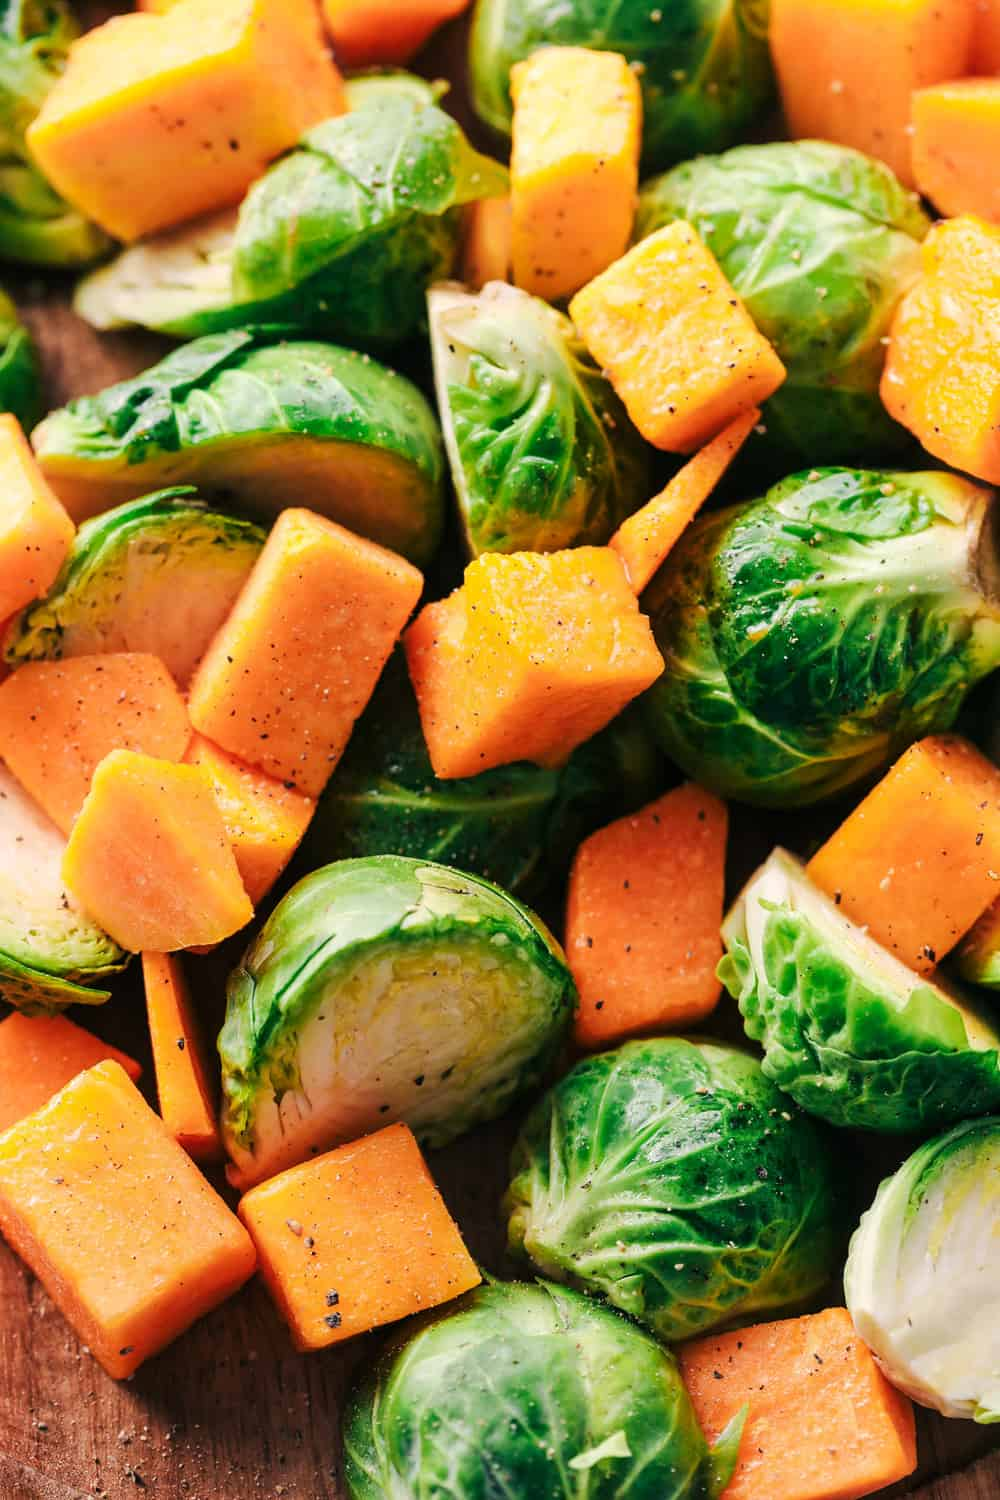 brussels sprouts and butternut squash cut up